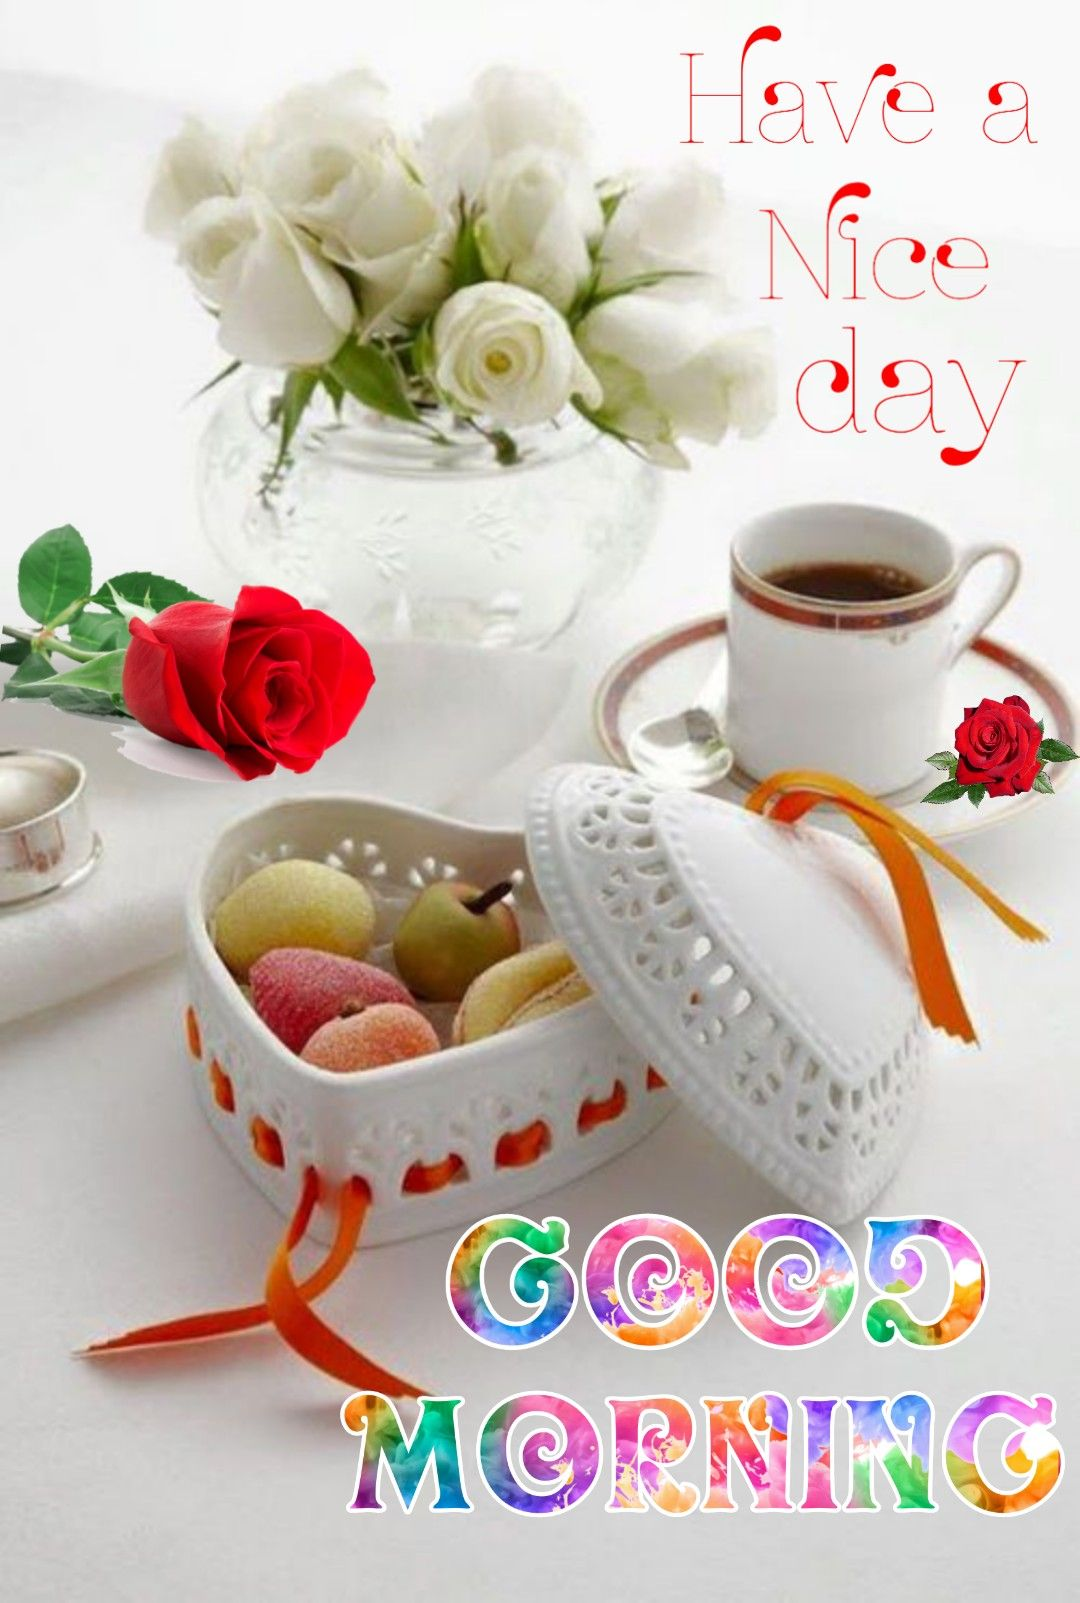 Good Morning Sister Have A Great Day Good Morning